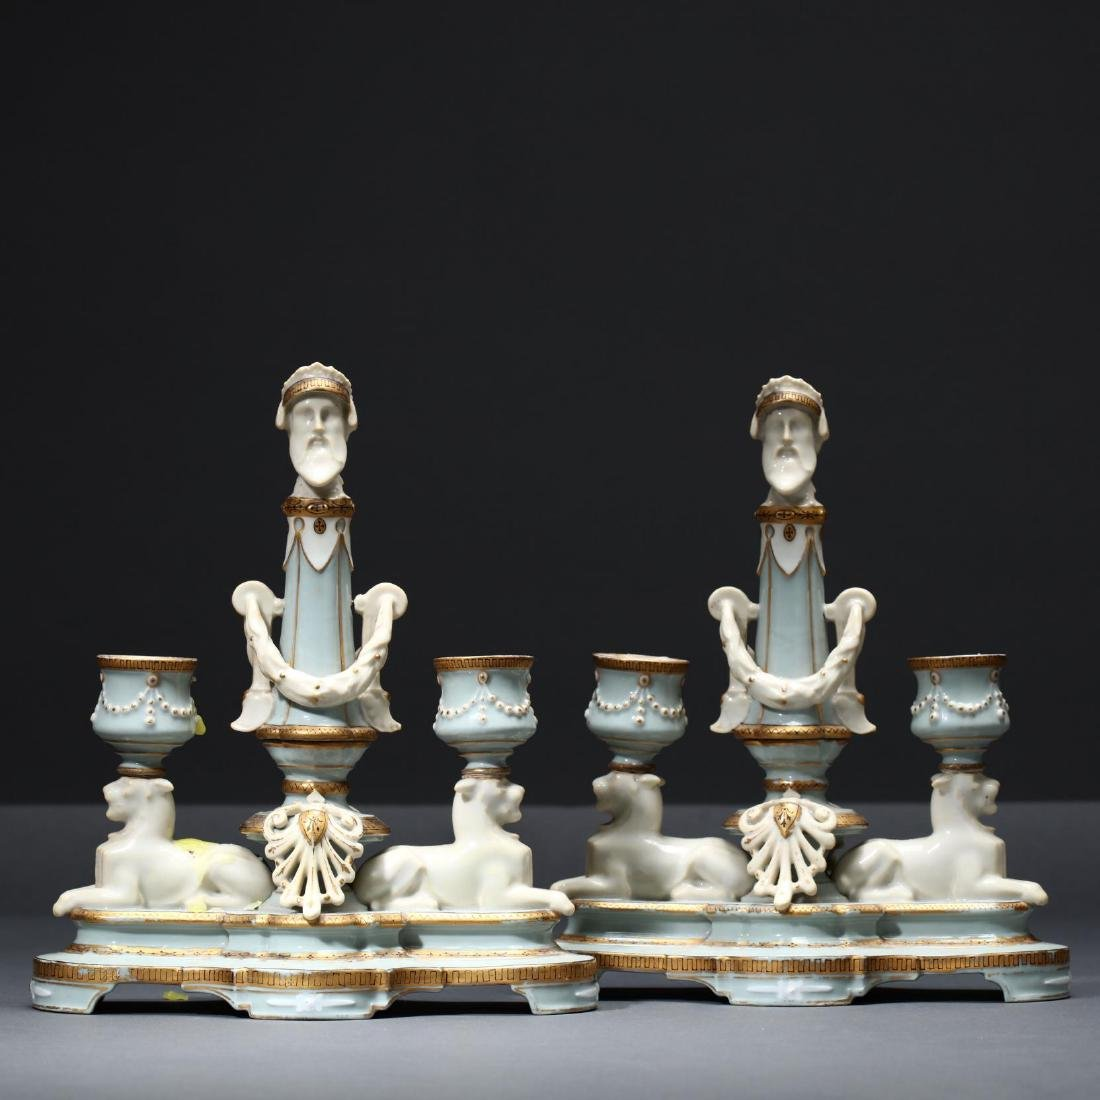 A Pair of Limoges Porcelain Candlesticks